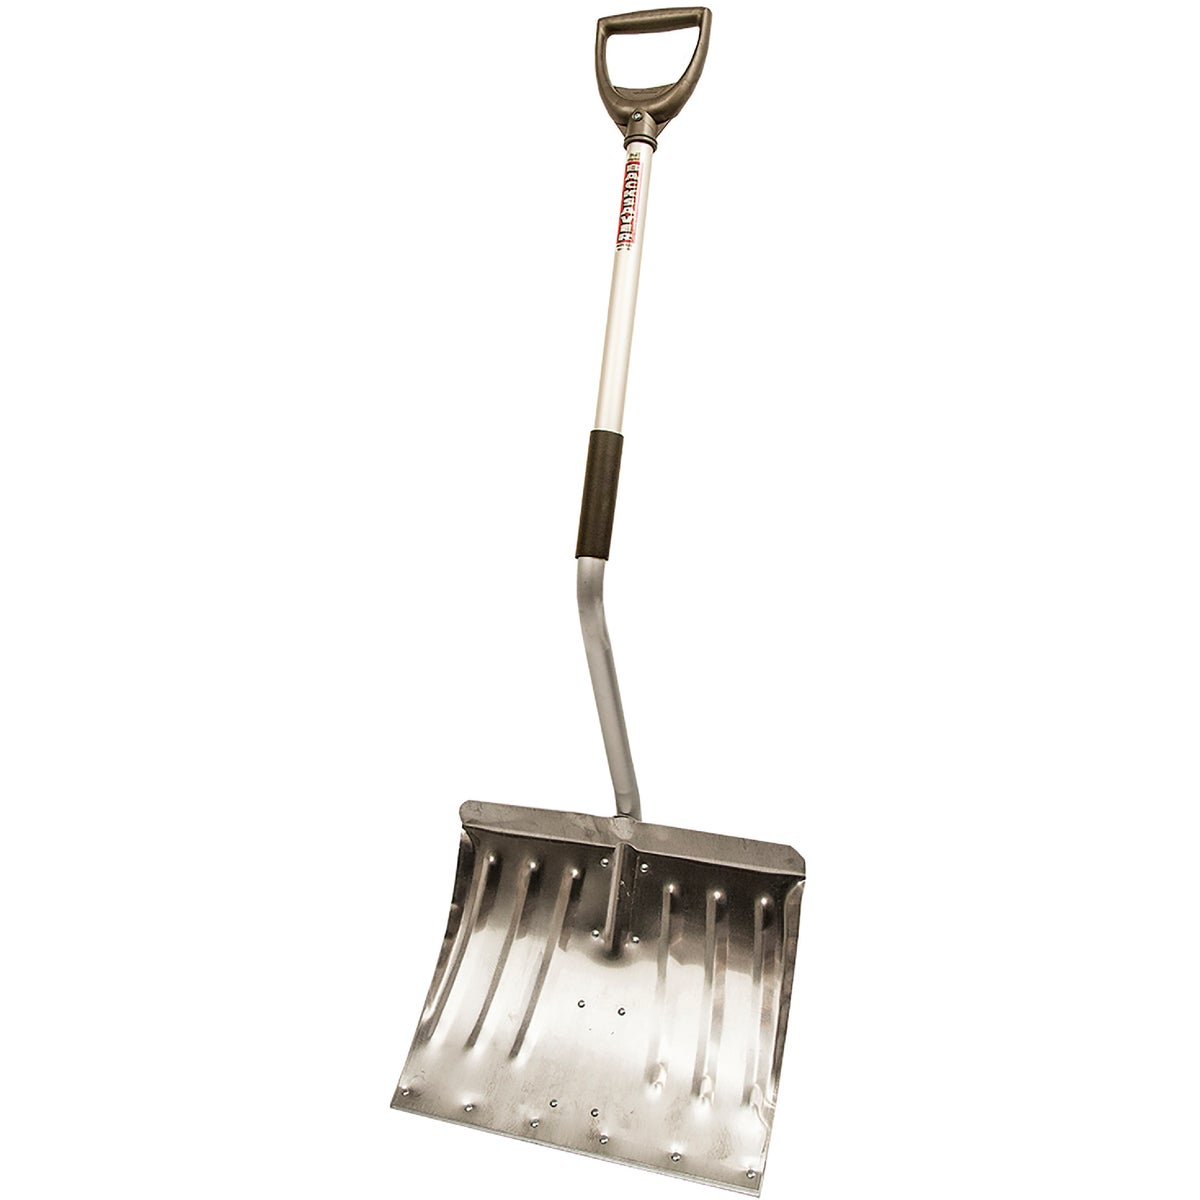 BENT HANDLE SNOW SHOVEL - 22BS-S by Rugg Manufacturing